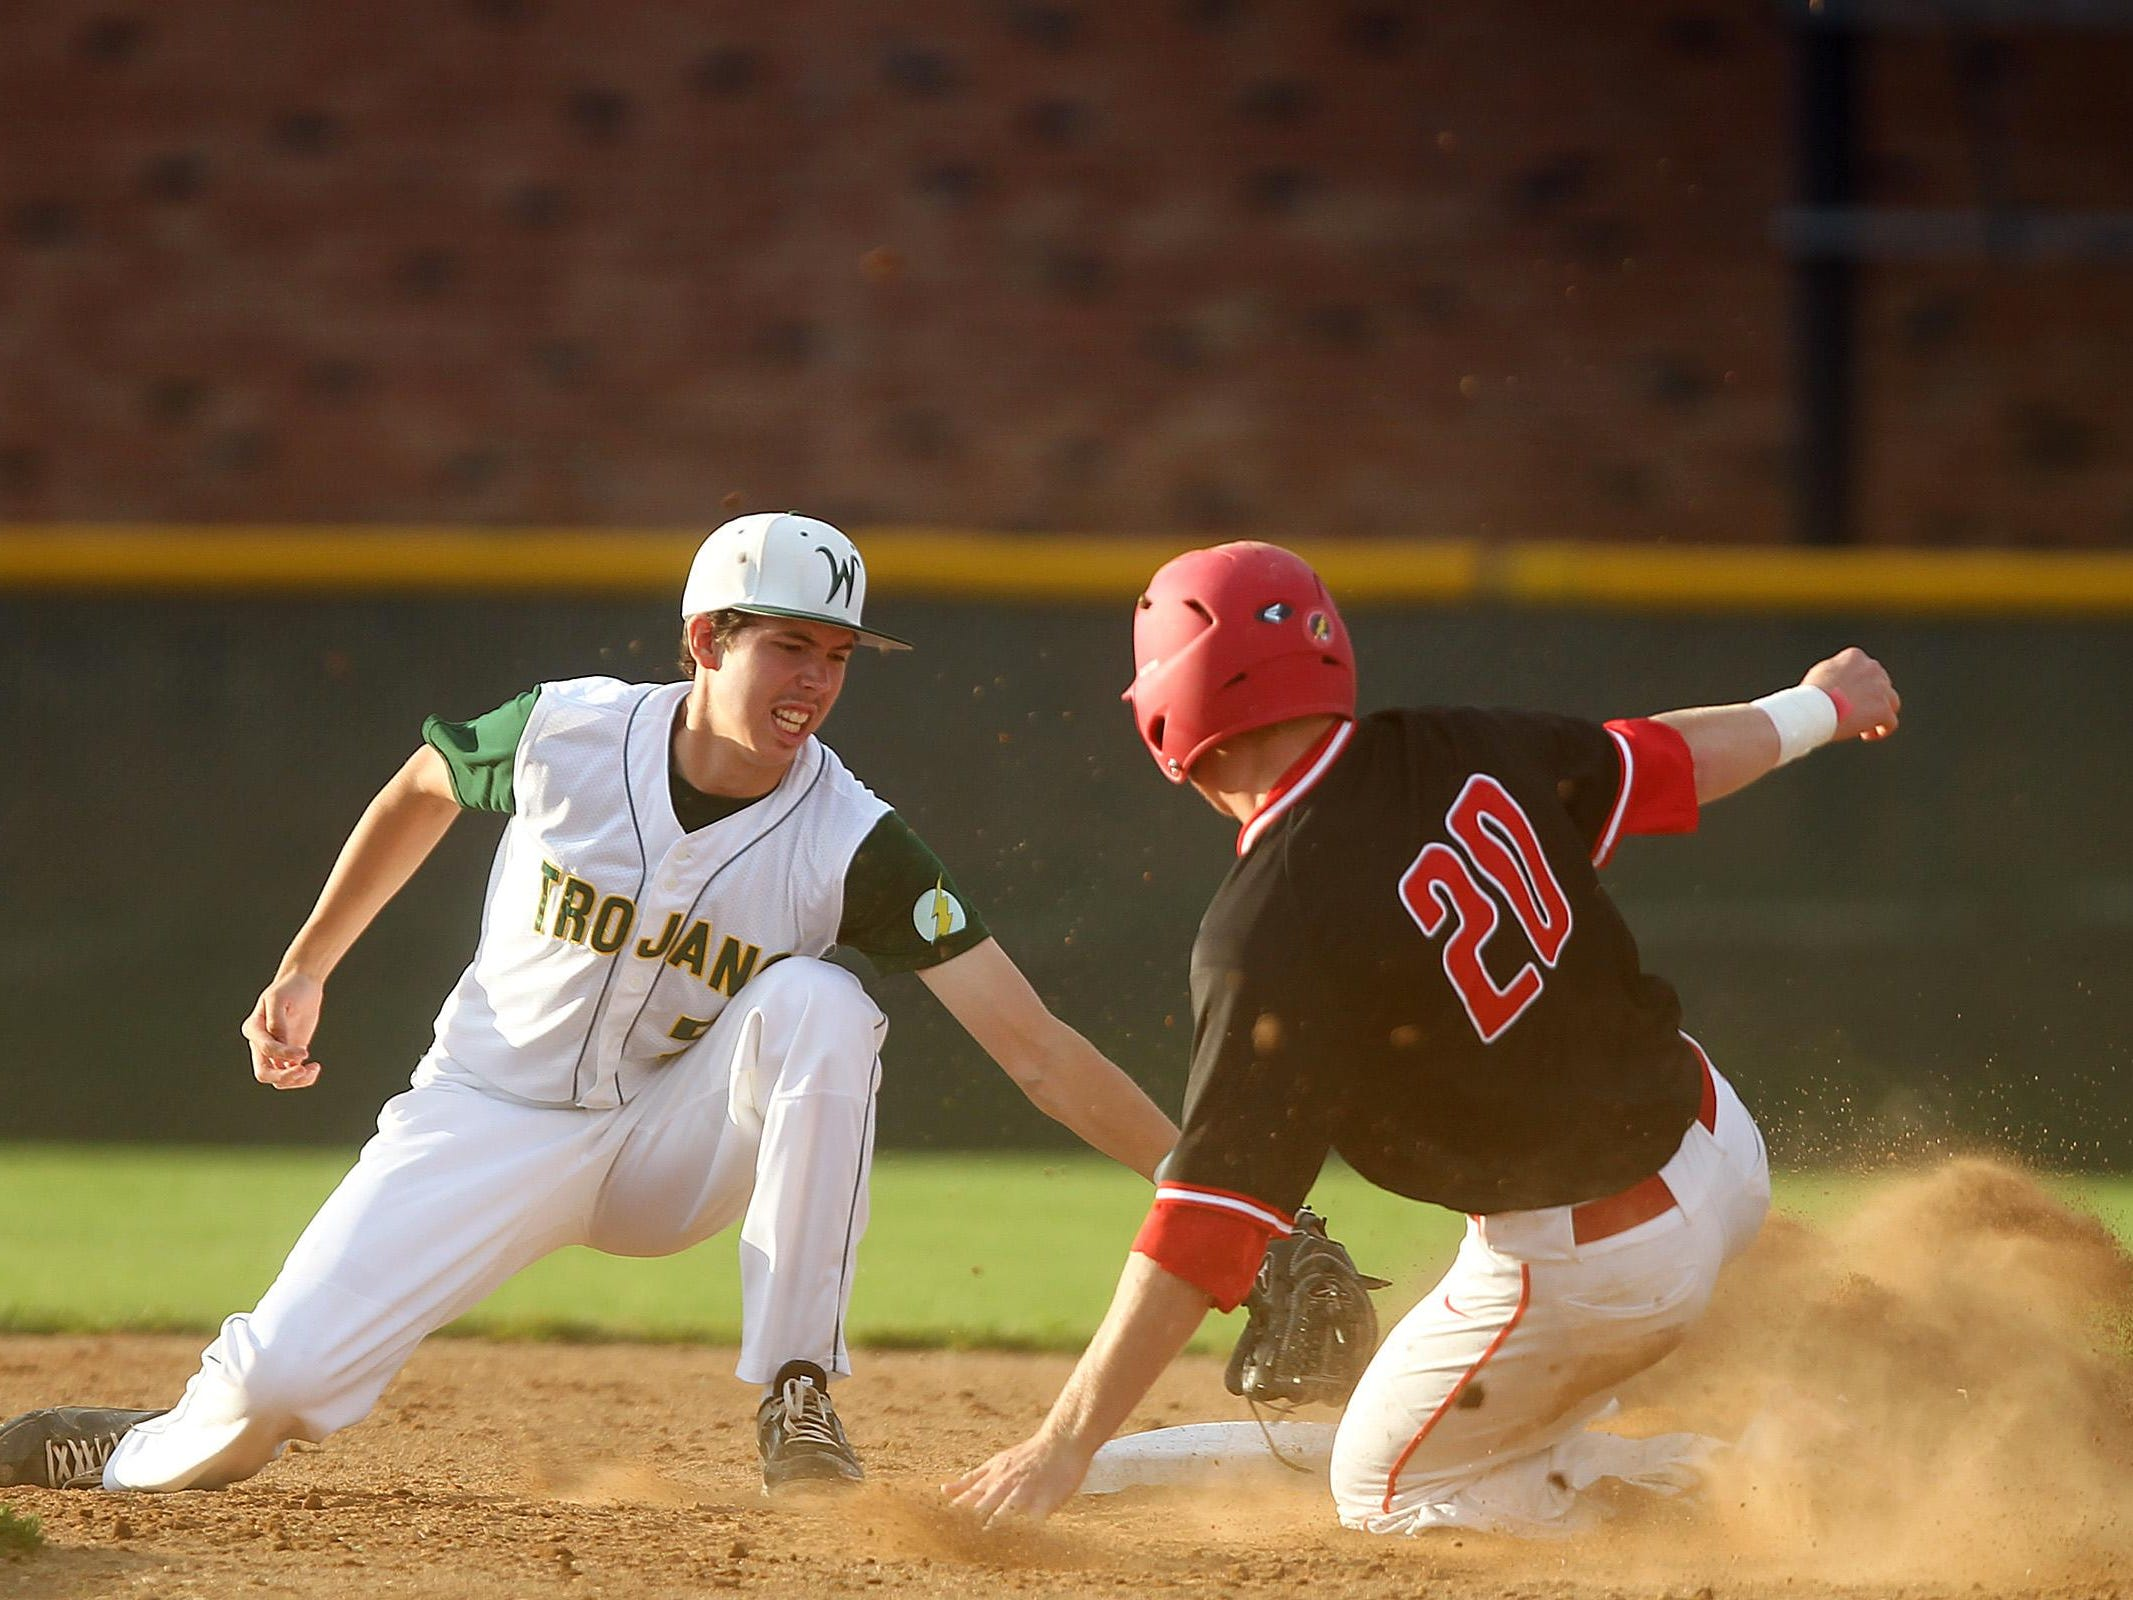 City High's Bryce Frantz safely slides past West High's Shane Sturtz during Tuesday's game. One night after grabbing an 8-7 victory in extra innings, West managed another one-run victory with a 2-1 triumph in the Trojans' last at-bat.